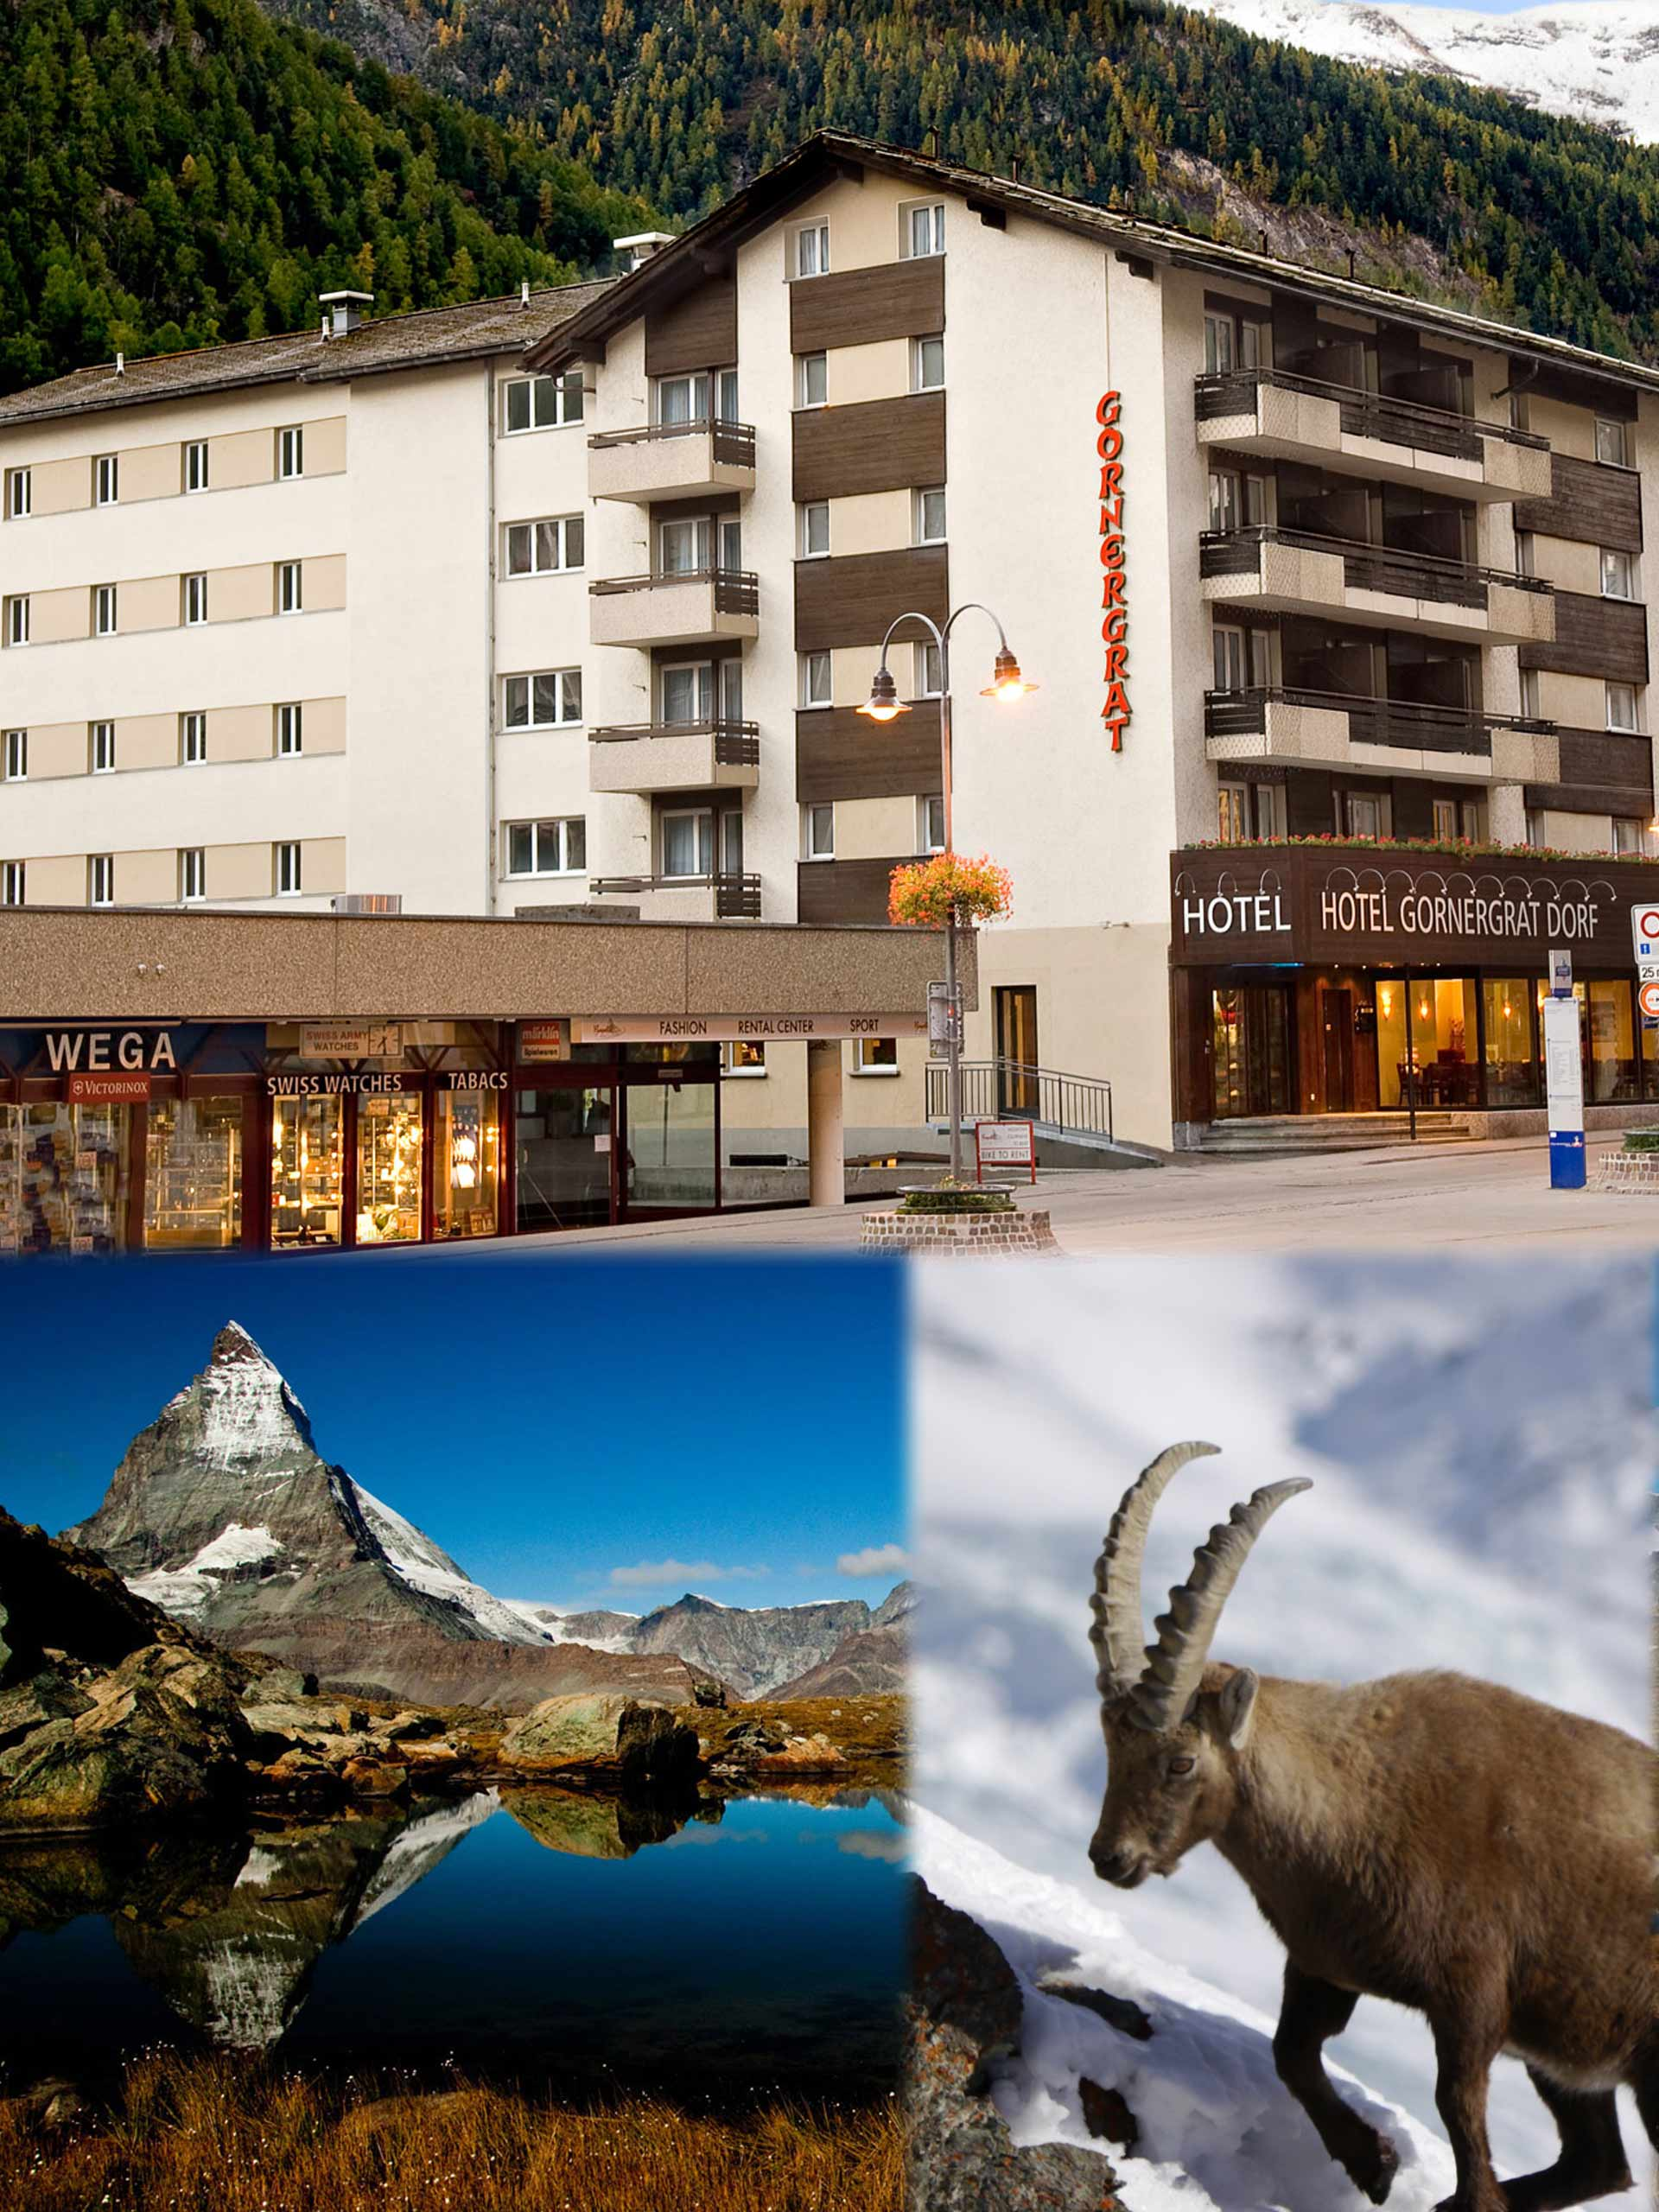 LOCATED IN THE CENTER OF ZERMATT, JUST A FEW STEPS AWAY FROM THE TRAIN STATION, YOU WILL FIND THE HOTEL GORNERGRAT DORF. IT IS ONLY 20 METERS TO GO, FOR ENTERING THE GORNERGRAT RAILWAY OR ONE OF THE ELECTRIC BUSSES IN DIRECTION TO THE SKI AREA OF KLEIN-MATTERHORN.